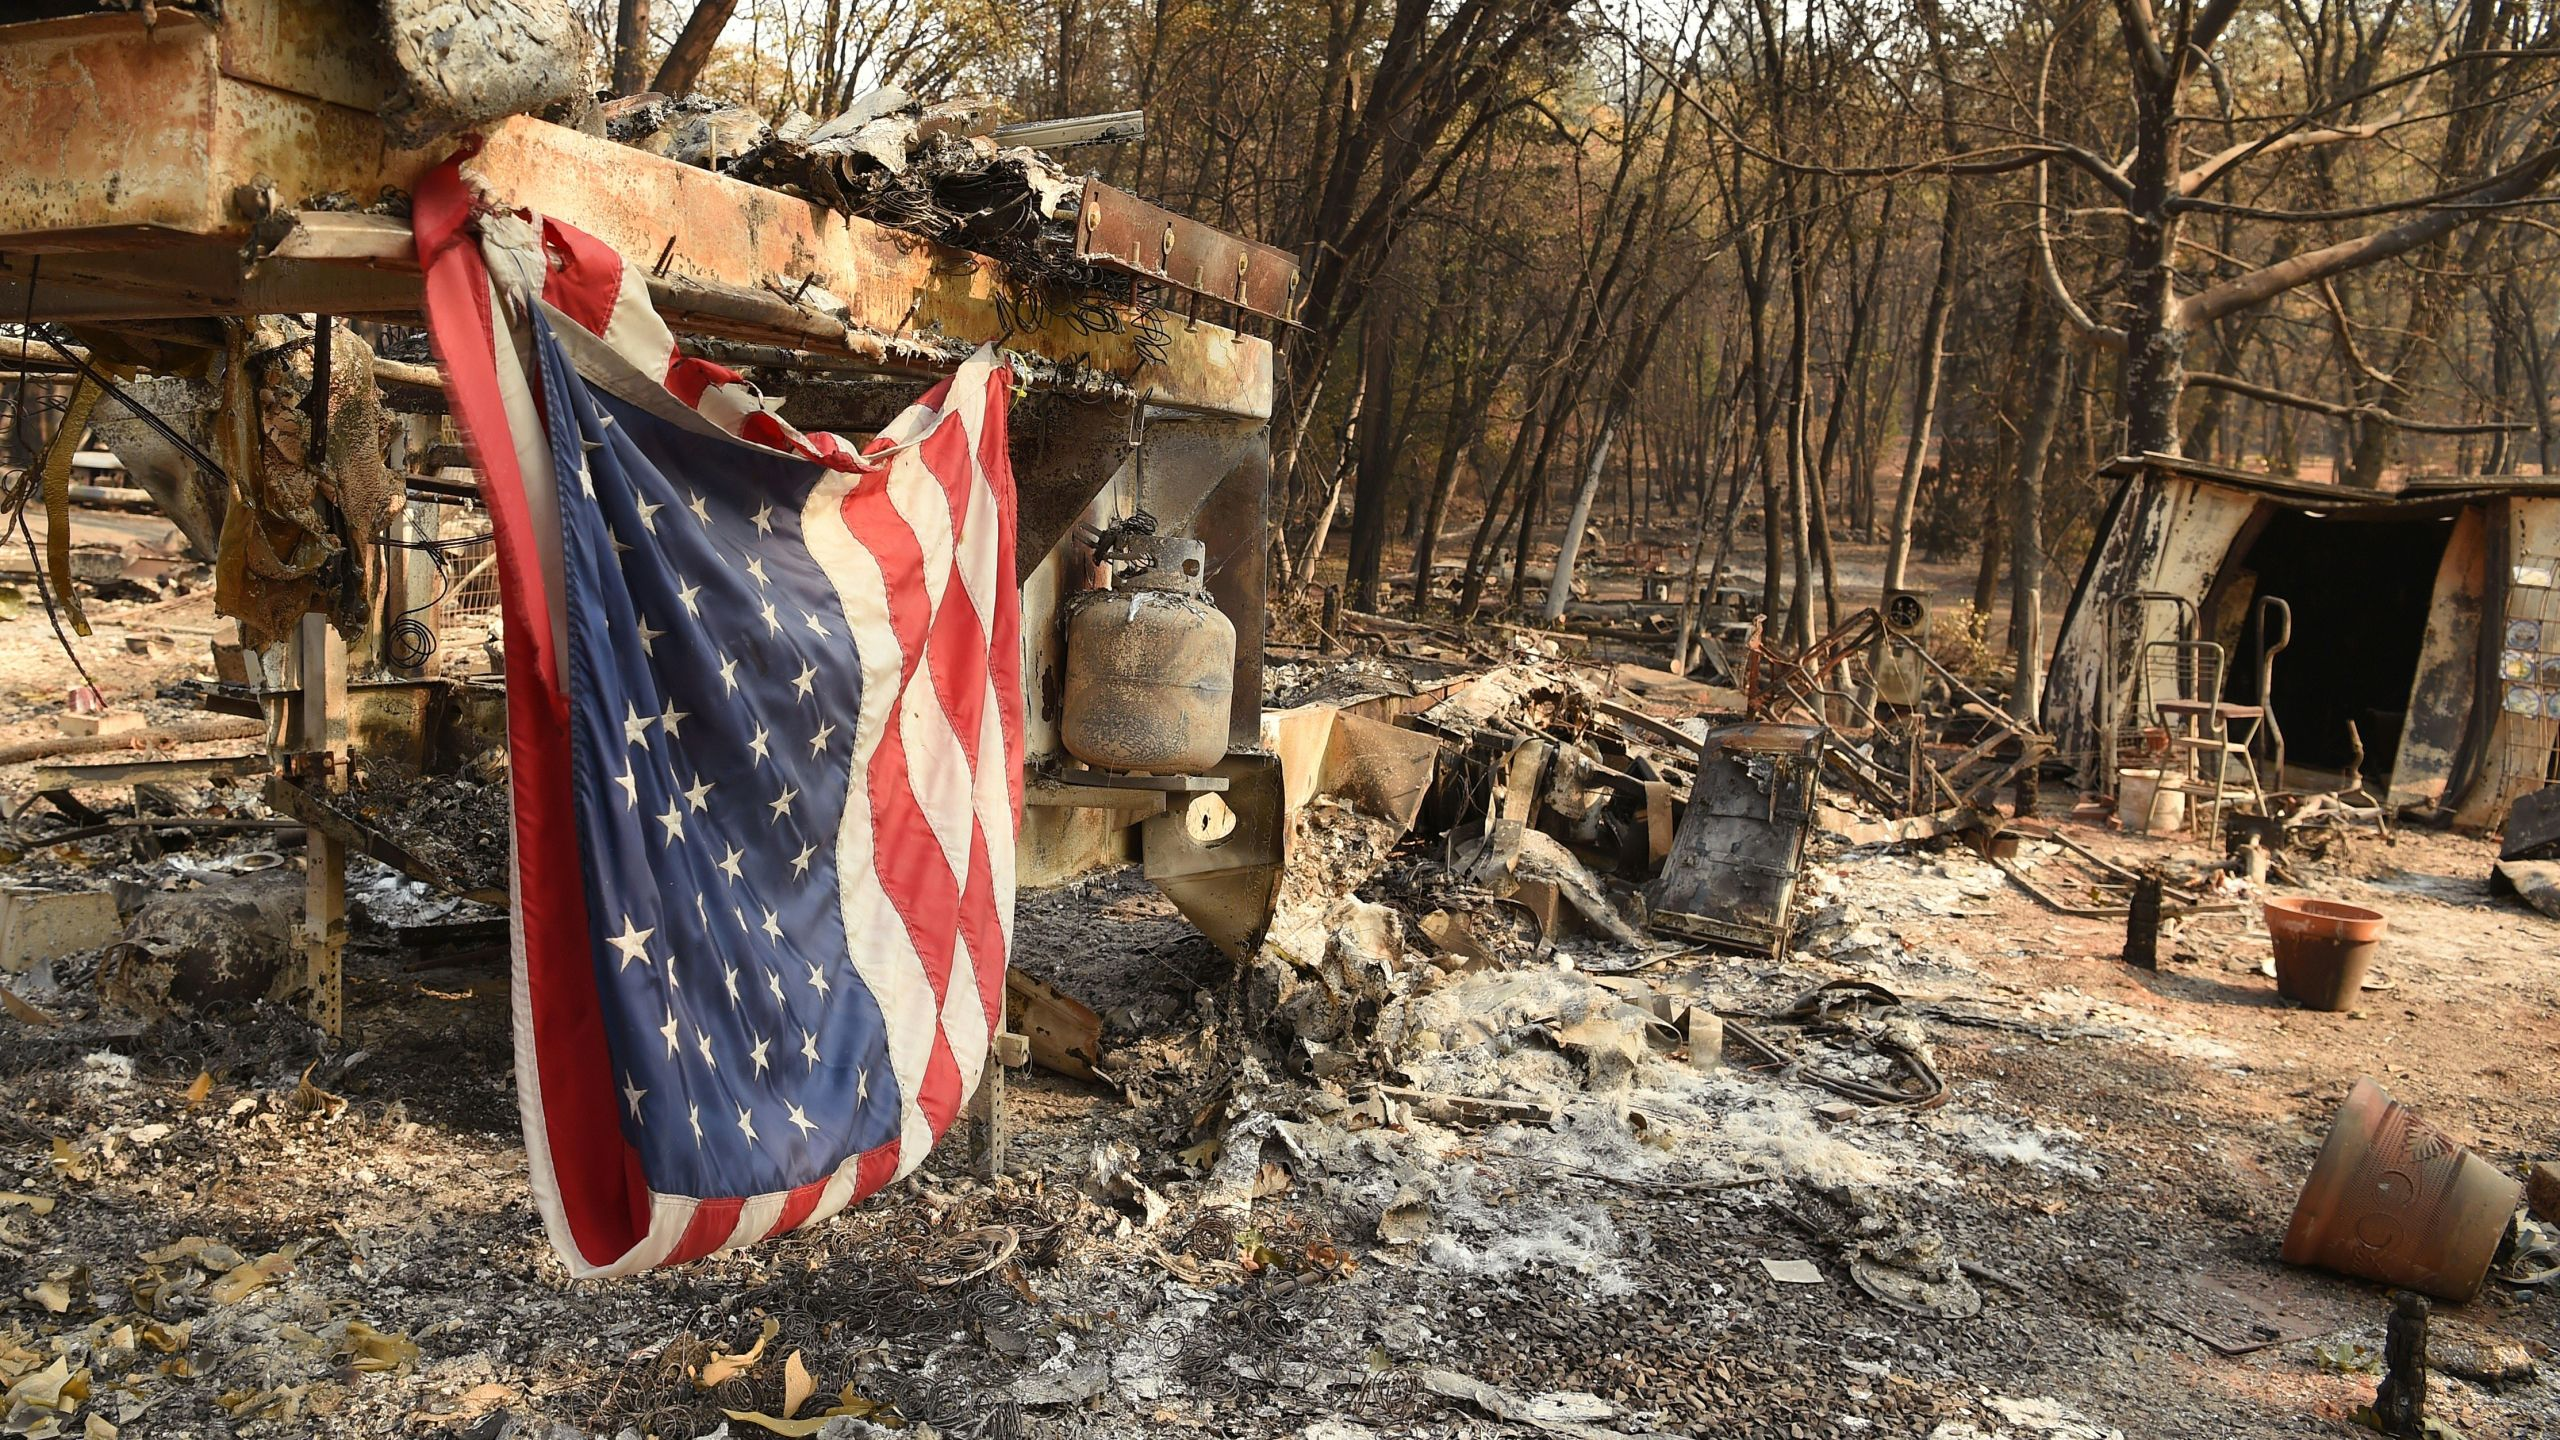 An American flag hangs at a burned out mobile home park in Paradise, California on Nov. 18, 2018. (JOSH EDELSON/AFP/Getty Images)